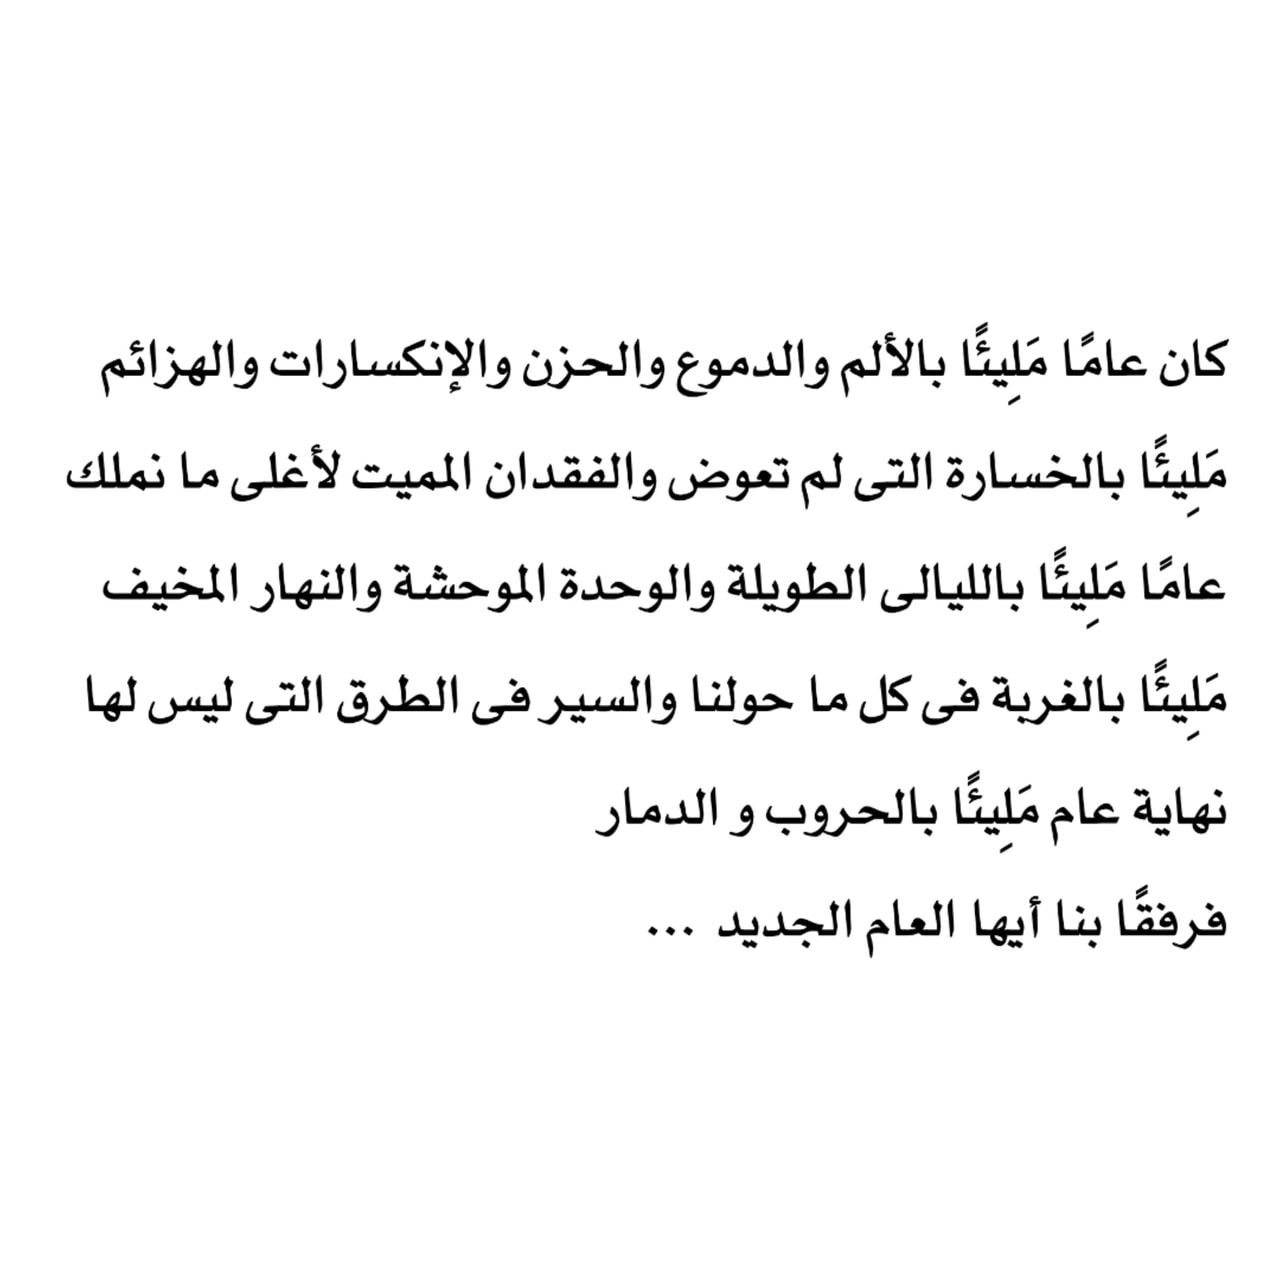 Image Shared By Msnammye Find Images And Videos About Text 2020 And كتابات كتابة كتب كتاب On We Heart It Words Quotes Quotes For Book Lovers Wisdom Quotes